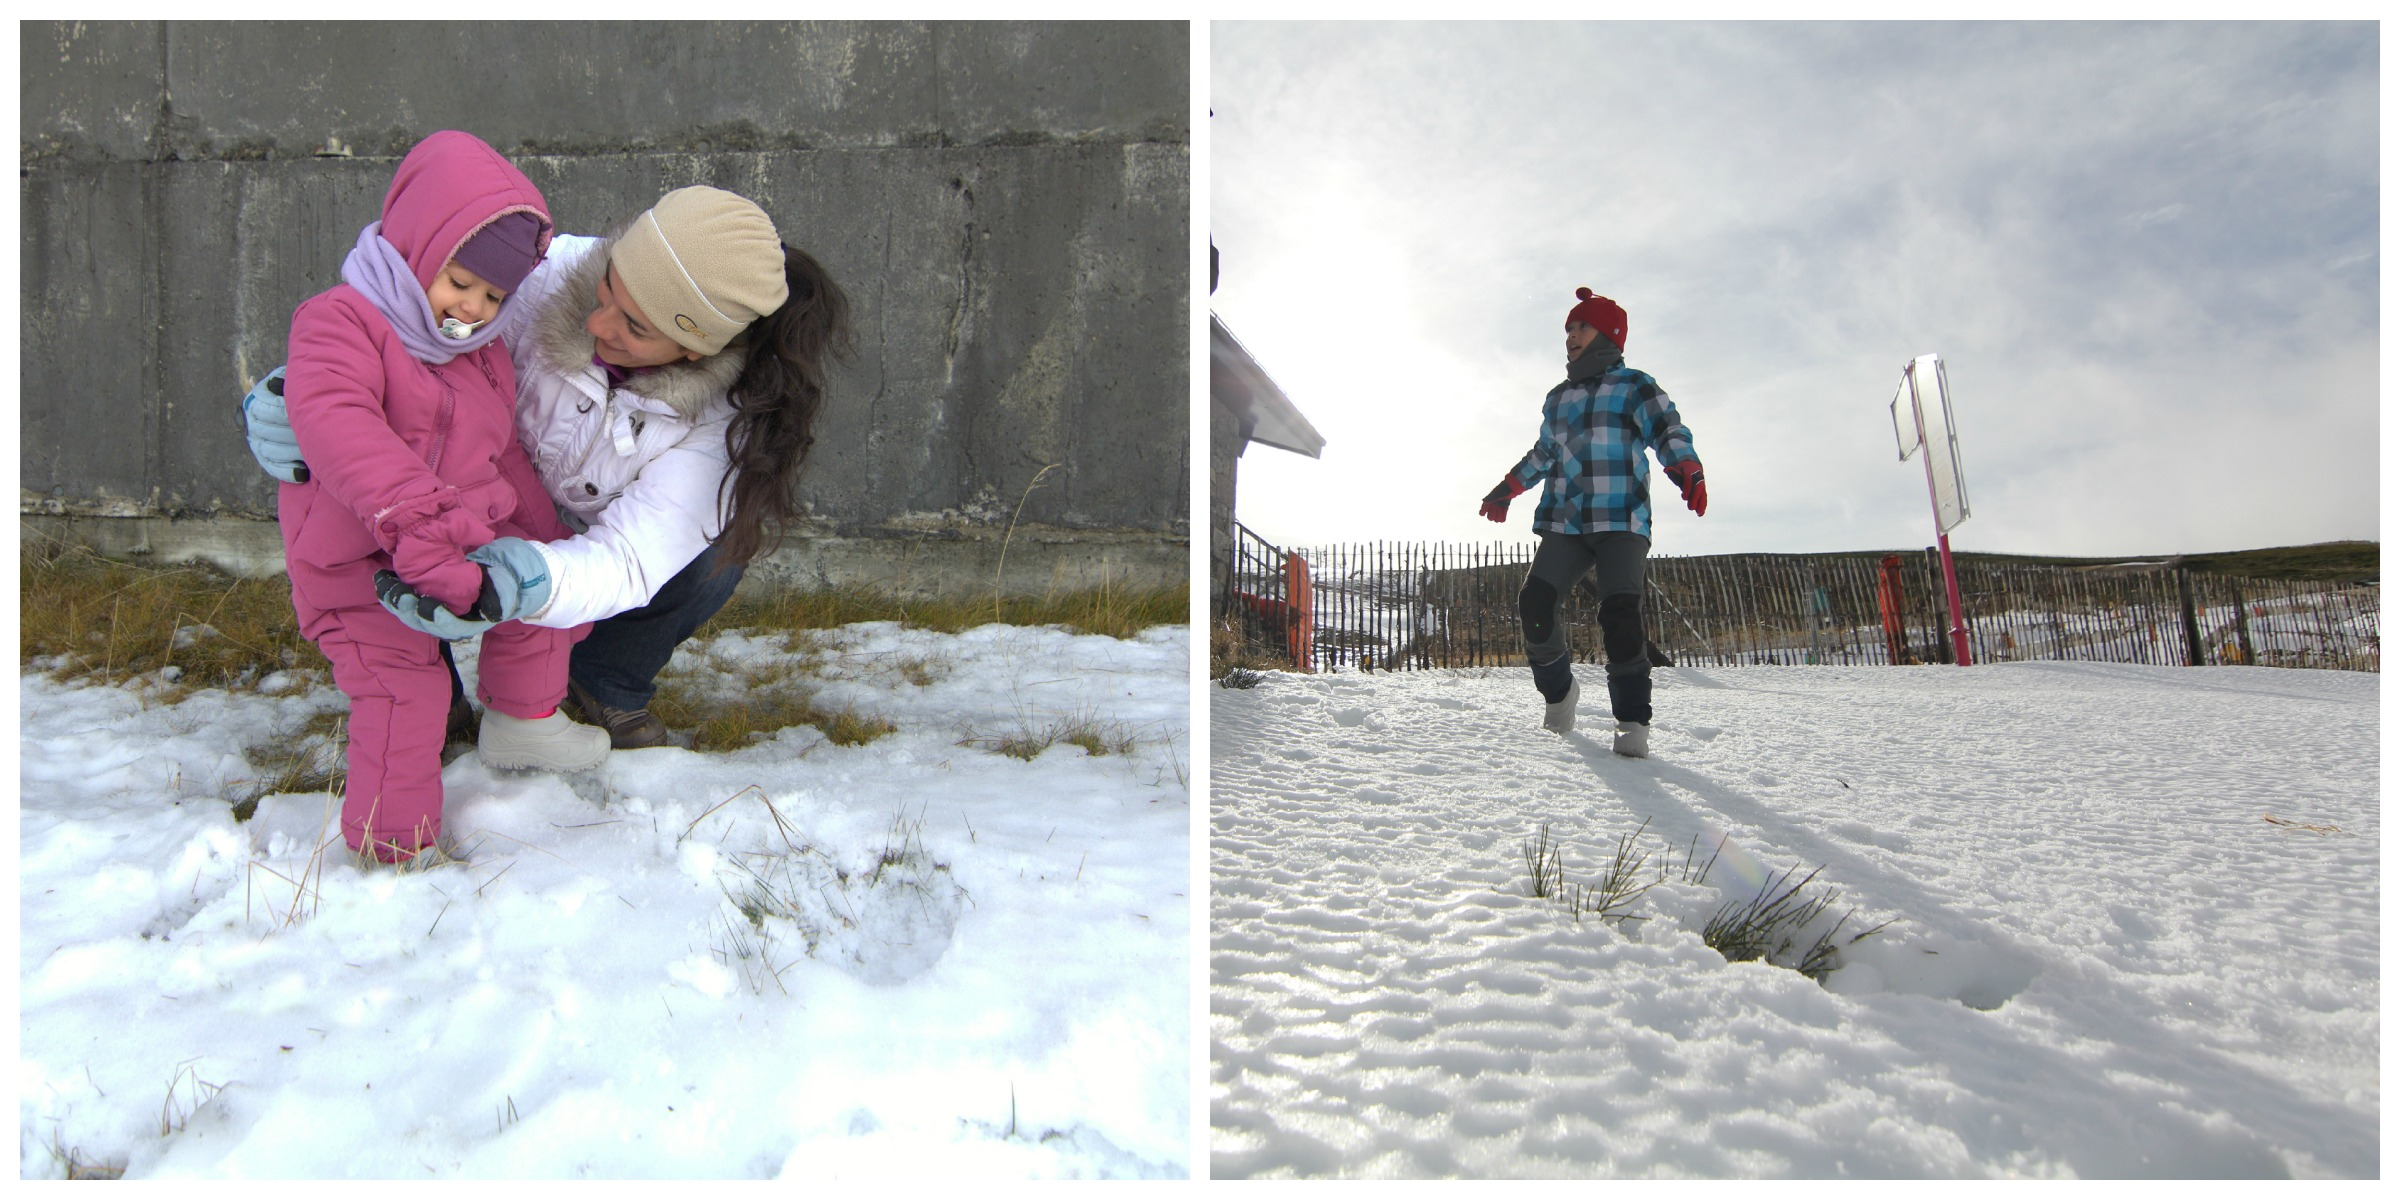 nievecollage7